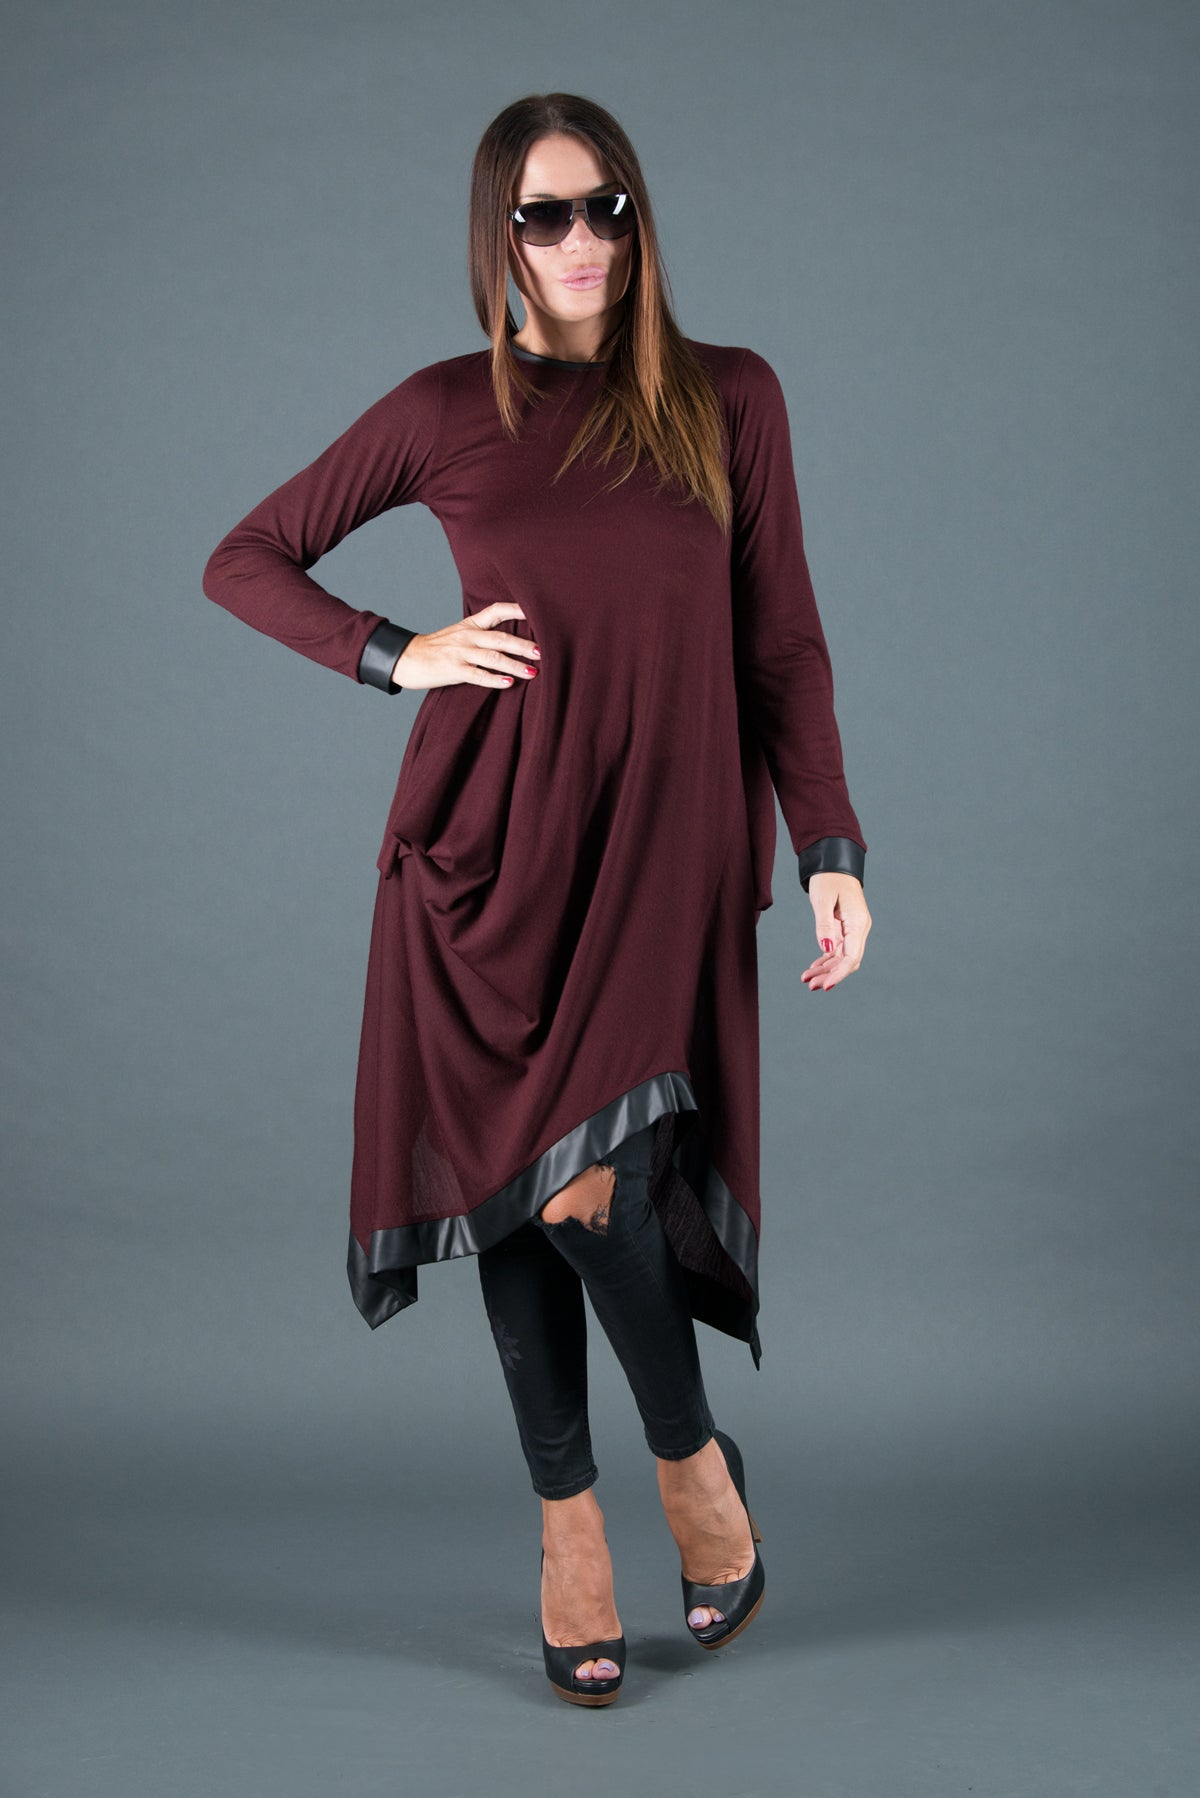 Winter Dress, Maxi Tunic, Asymmetrical autumn Dress with loose line